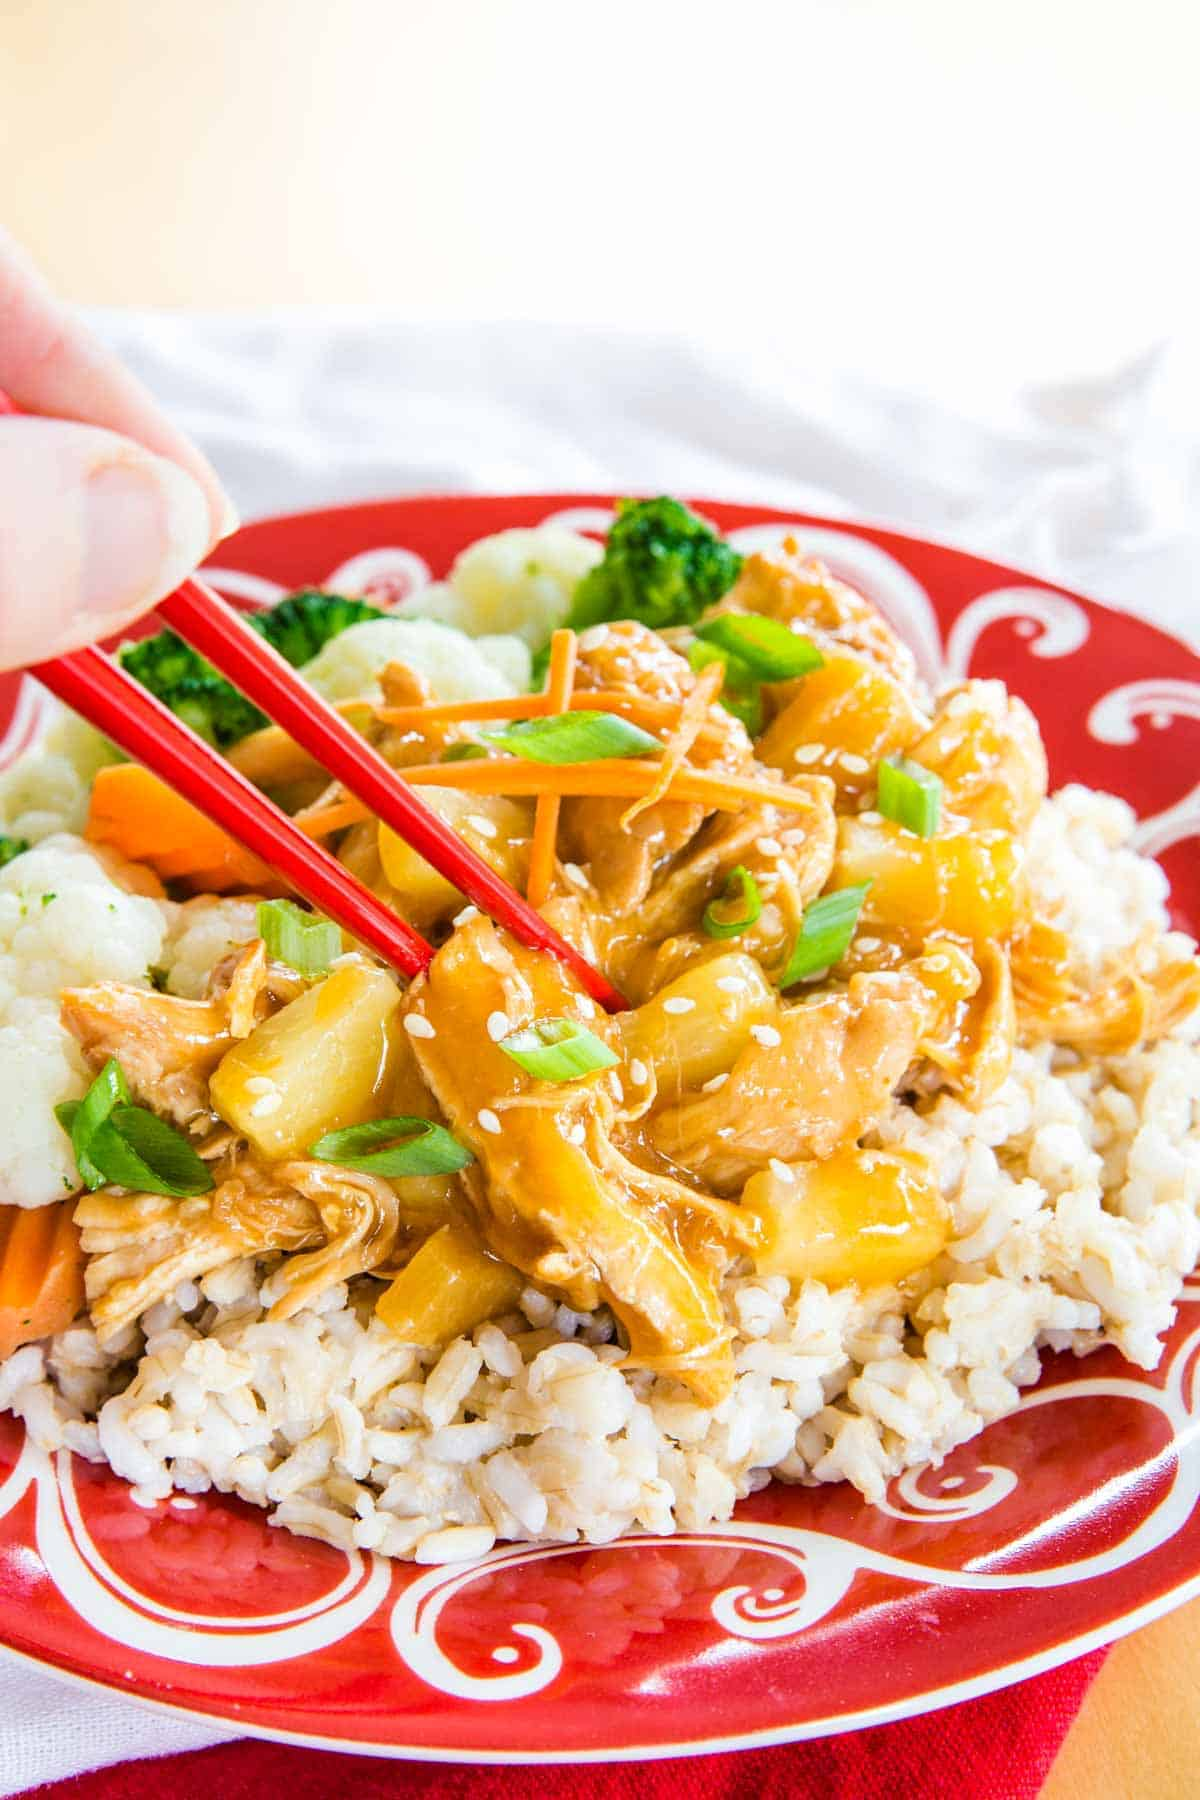 hand using red chopsticks to pick up pineapple teriyaki chicken served over brown rice